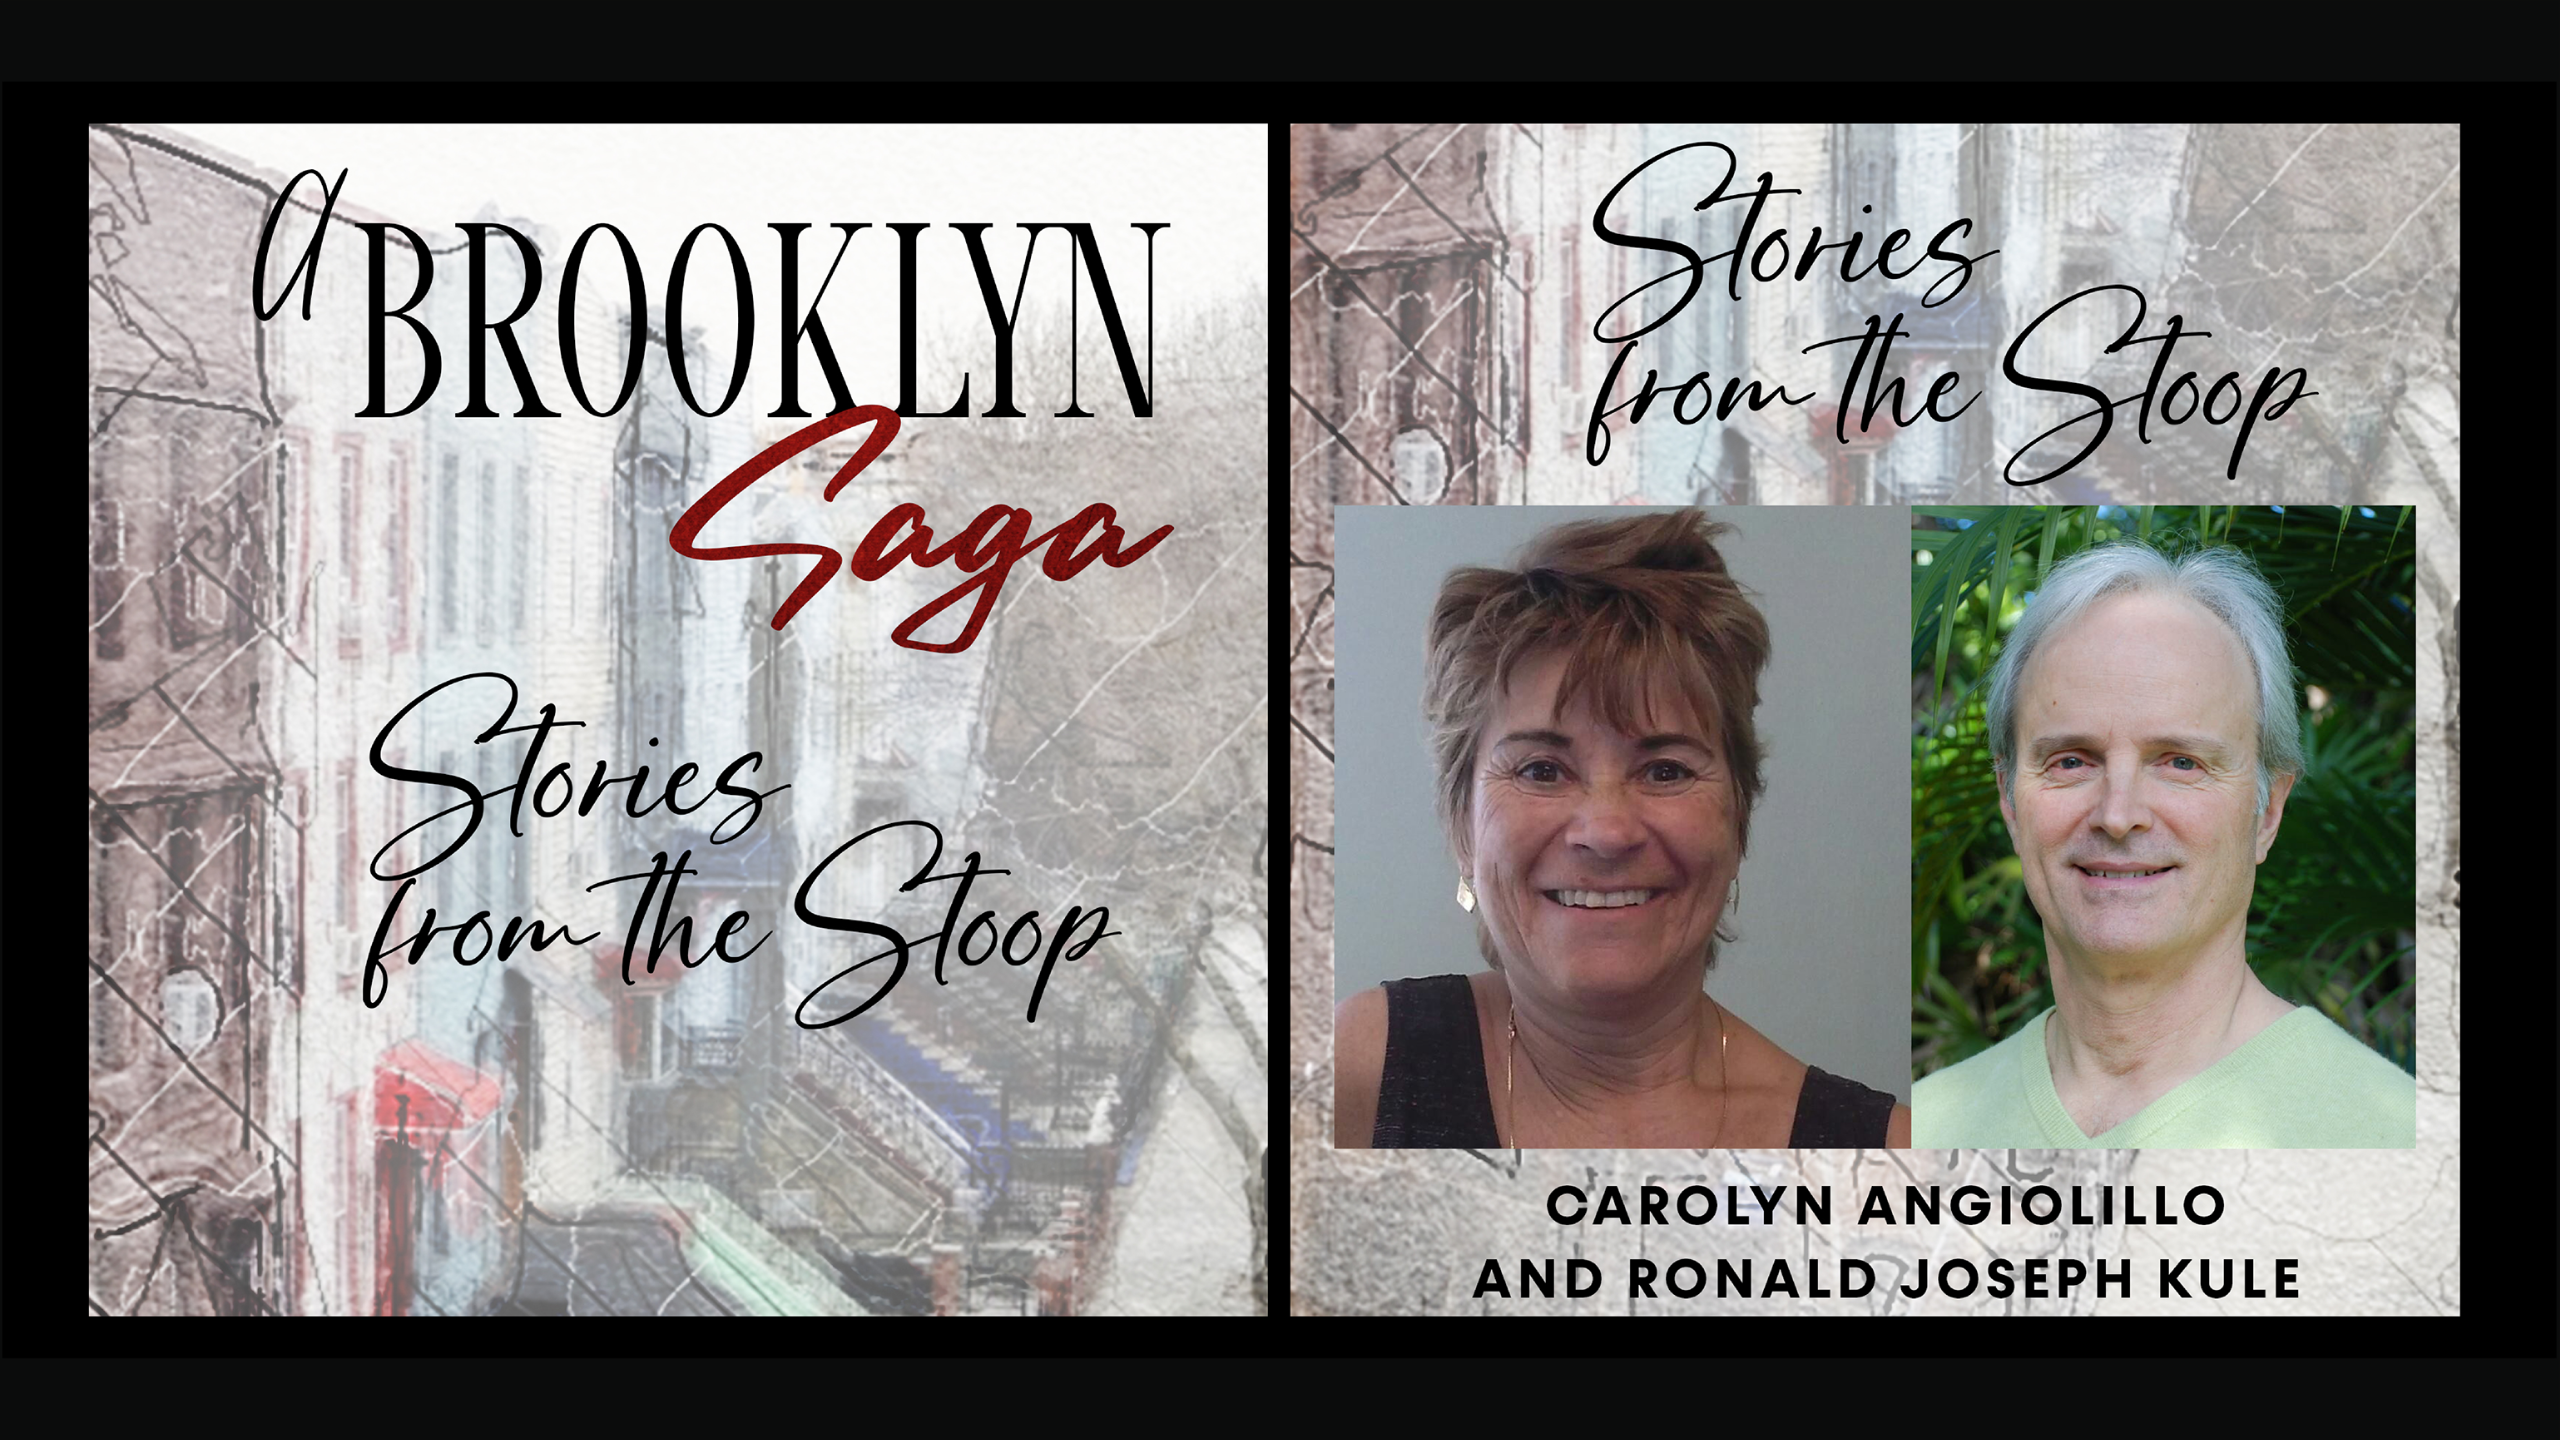 Carolyn Angiolillo book signing announcement